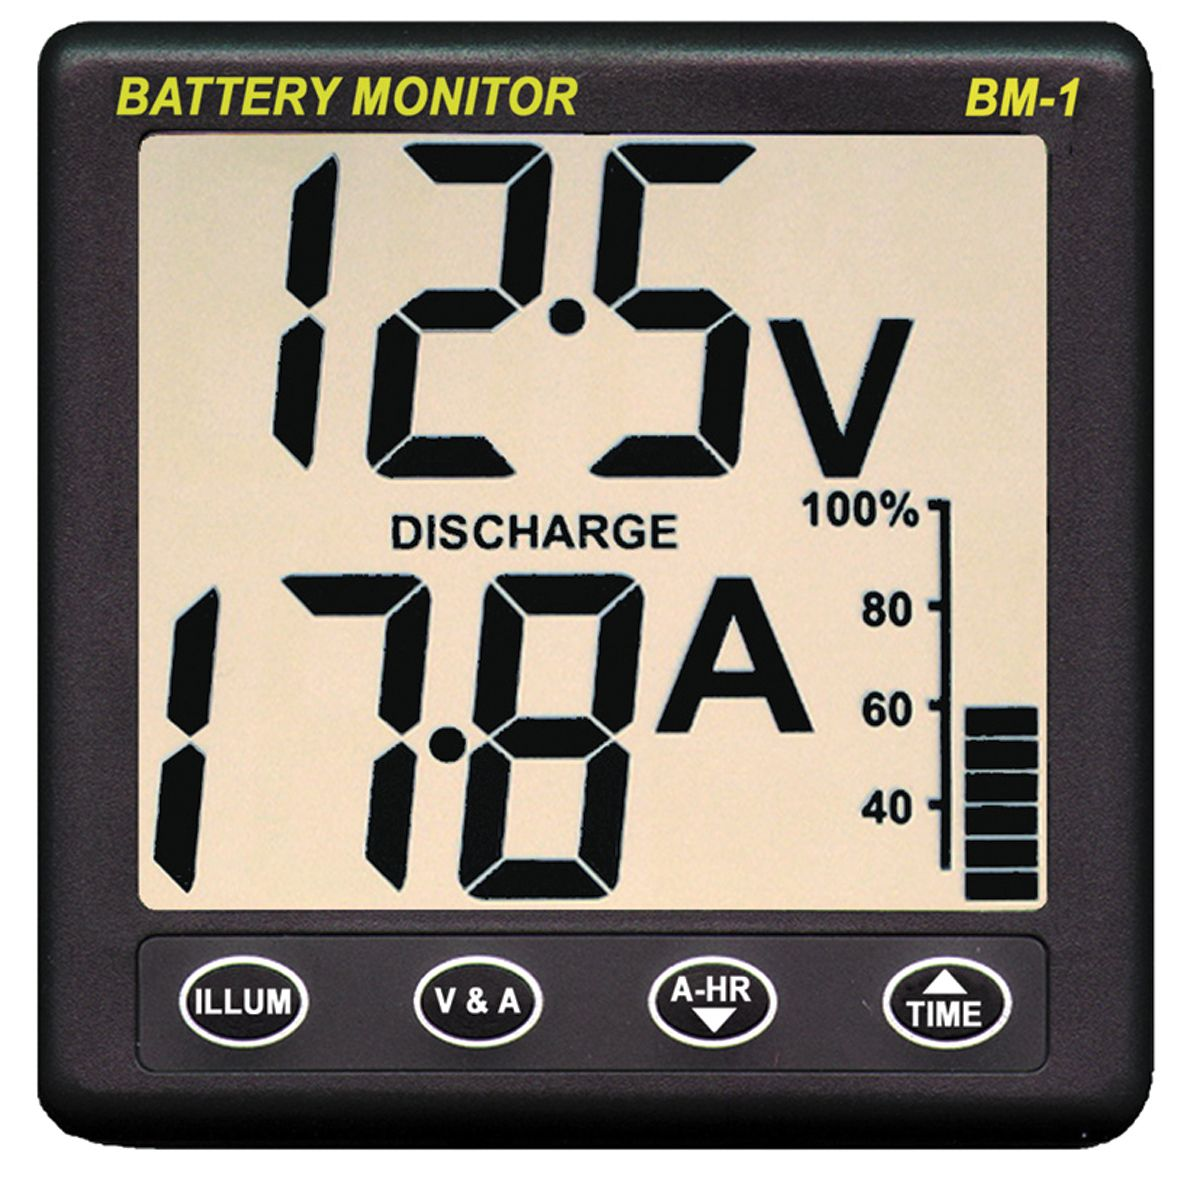 Battery Monitor for the Battery Bank